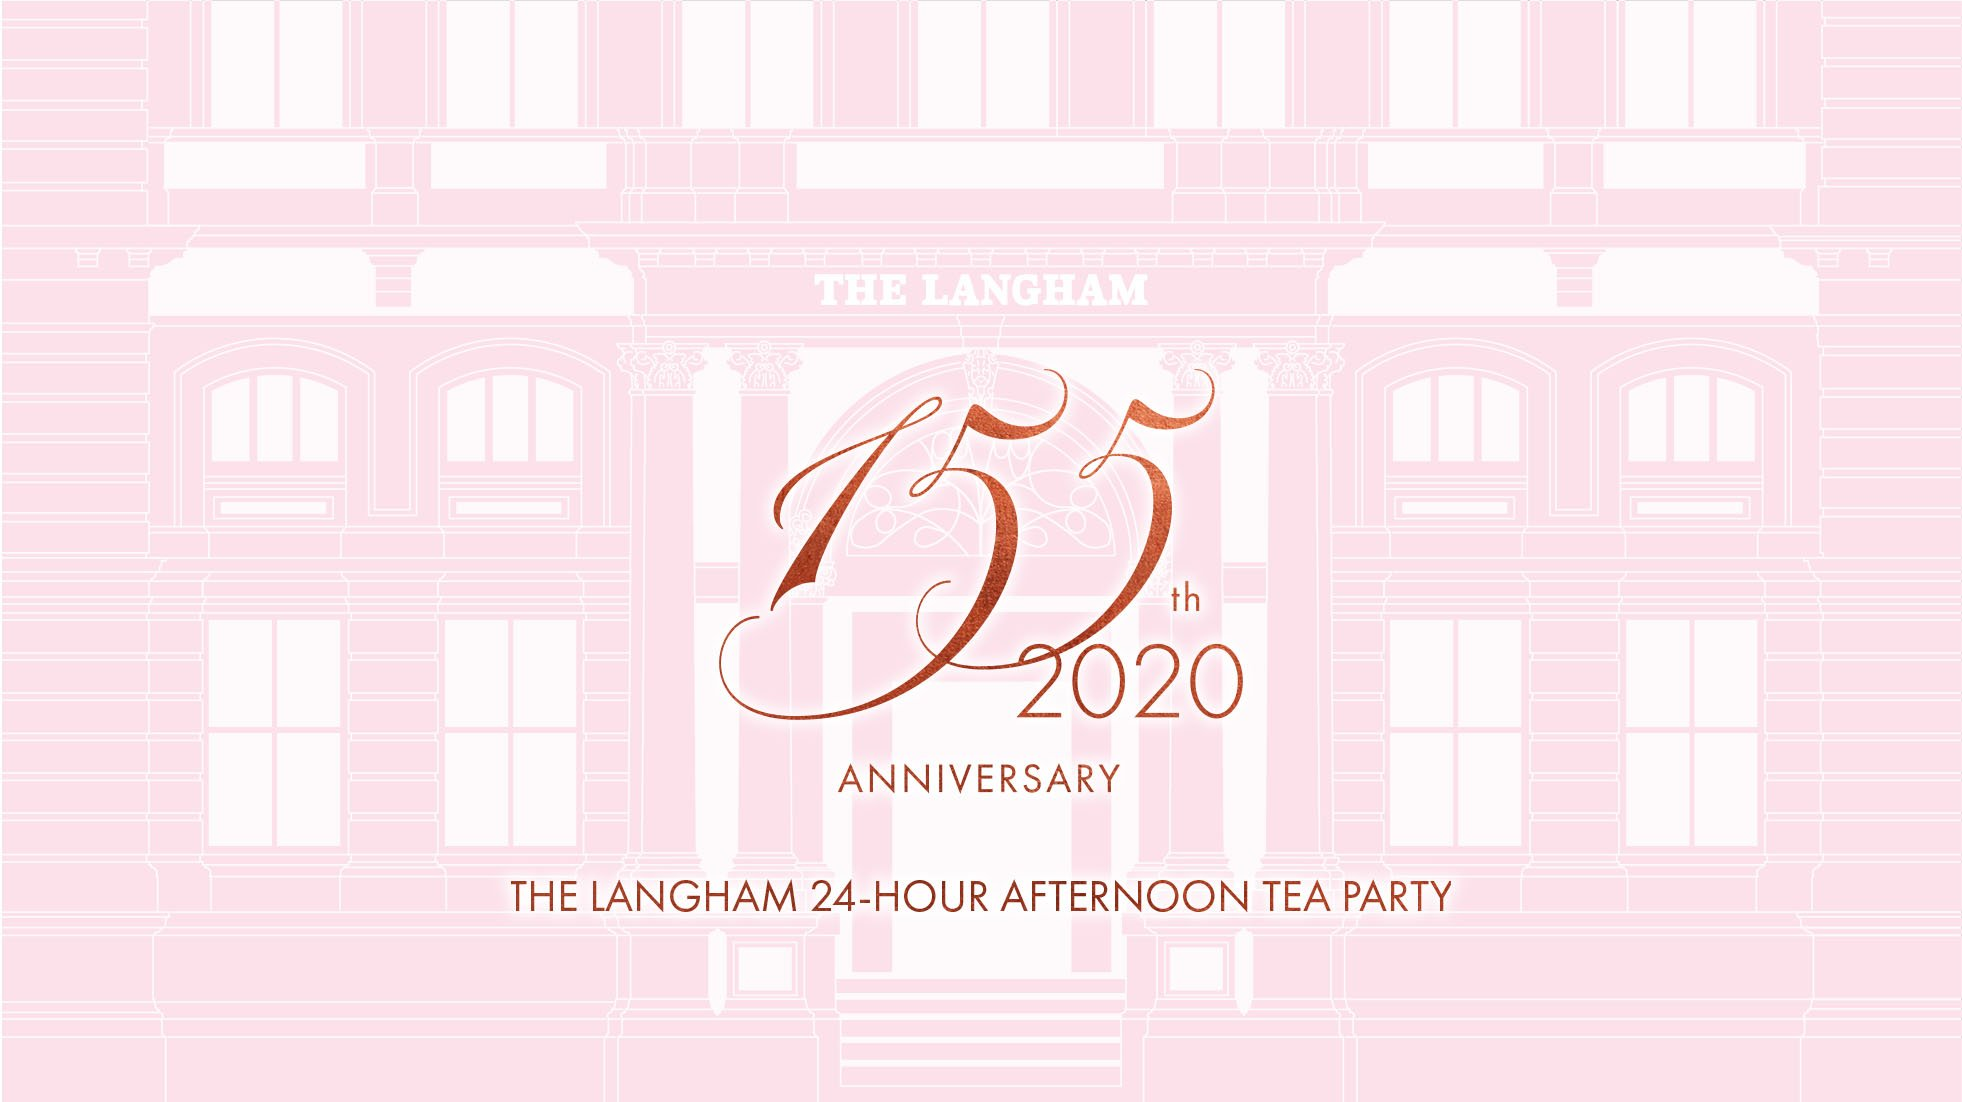 OPERA STARS, MASTER CHEFS, CALLIGRAPHERS, MUSICIANS, ARTISTS AND PHOTOGRAPHERS TO HEADLINE THE 24-HOUR LIVESTREAM FOR THE LANGHAM 155TH ANNIVERSARY